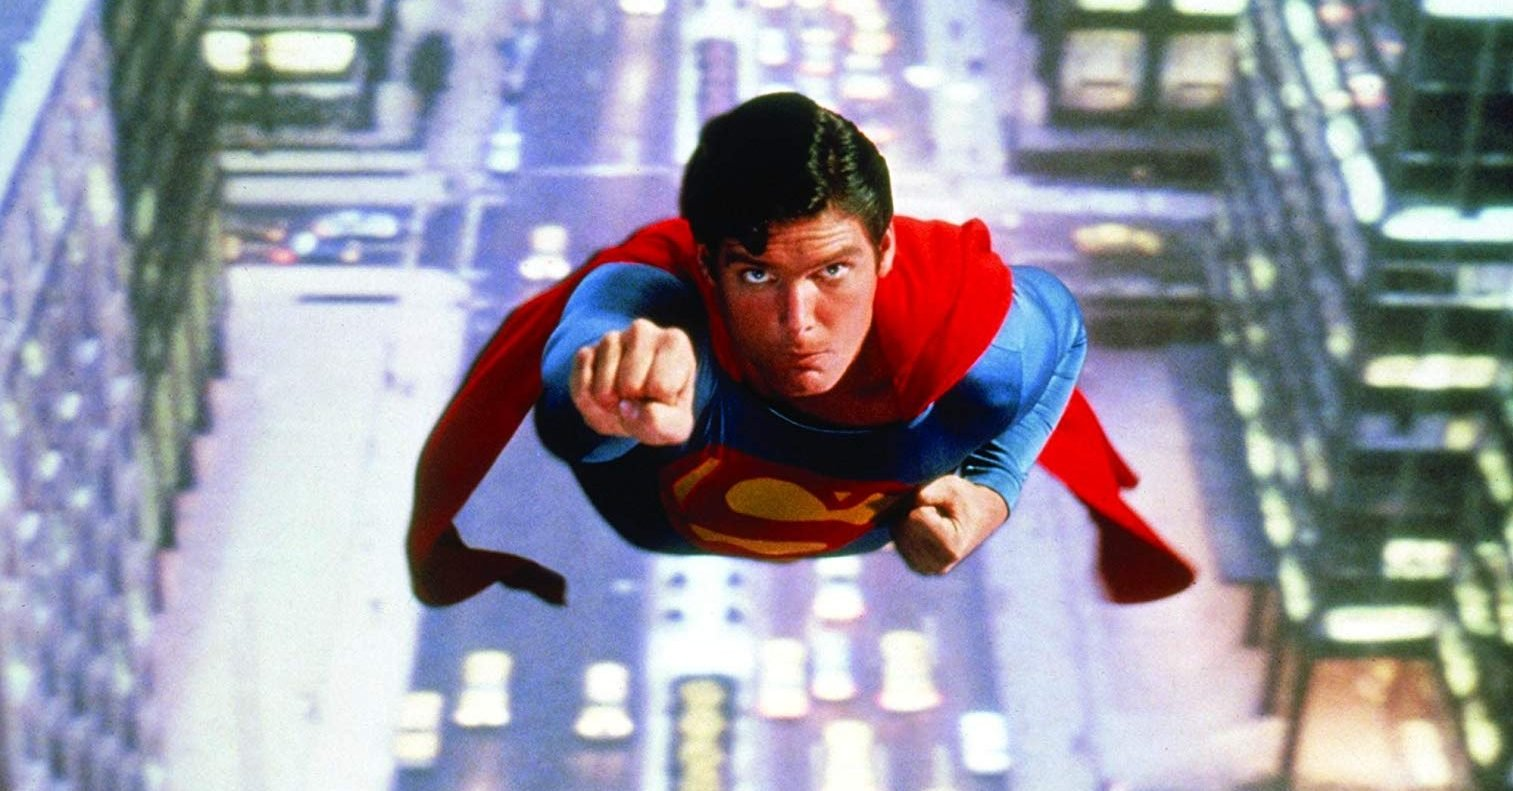 Richard Donner's 'Superman' Flies Back to Theaters For Its 40th Anniversary